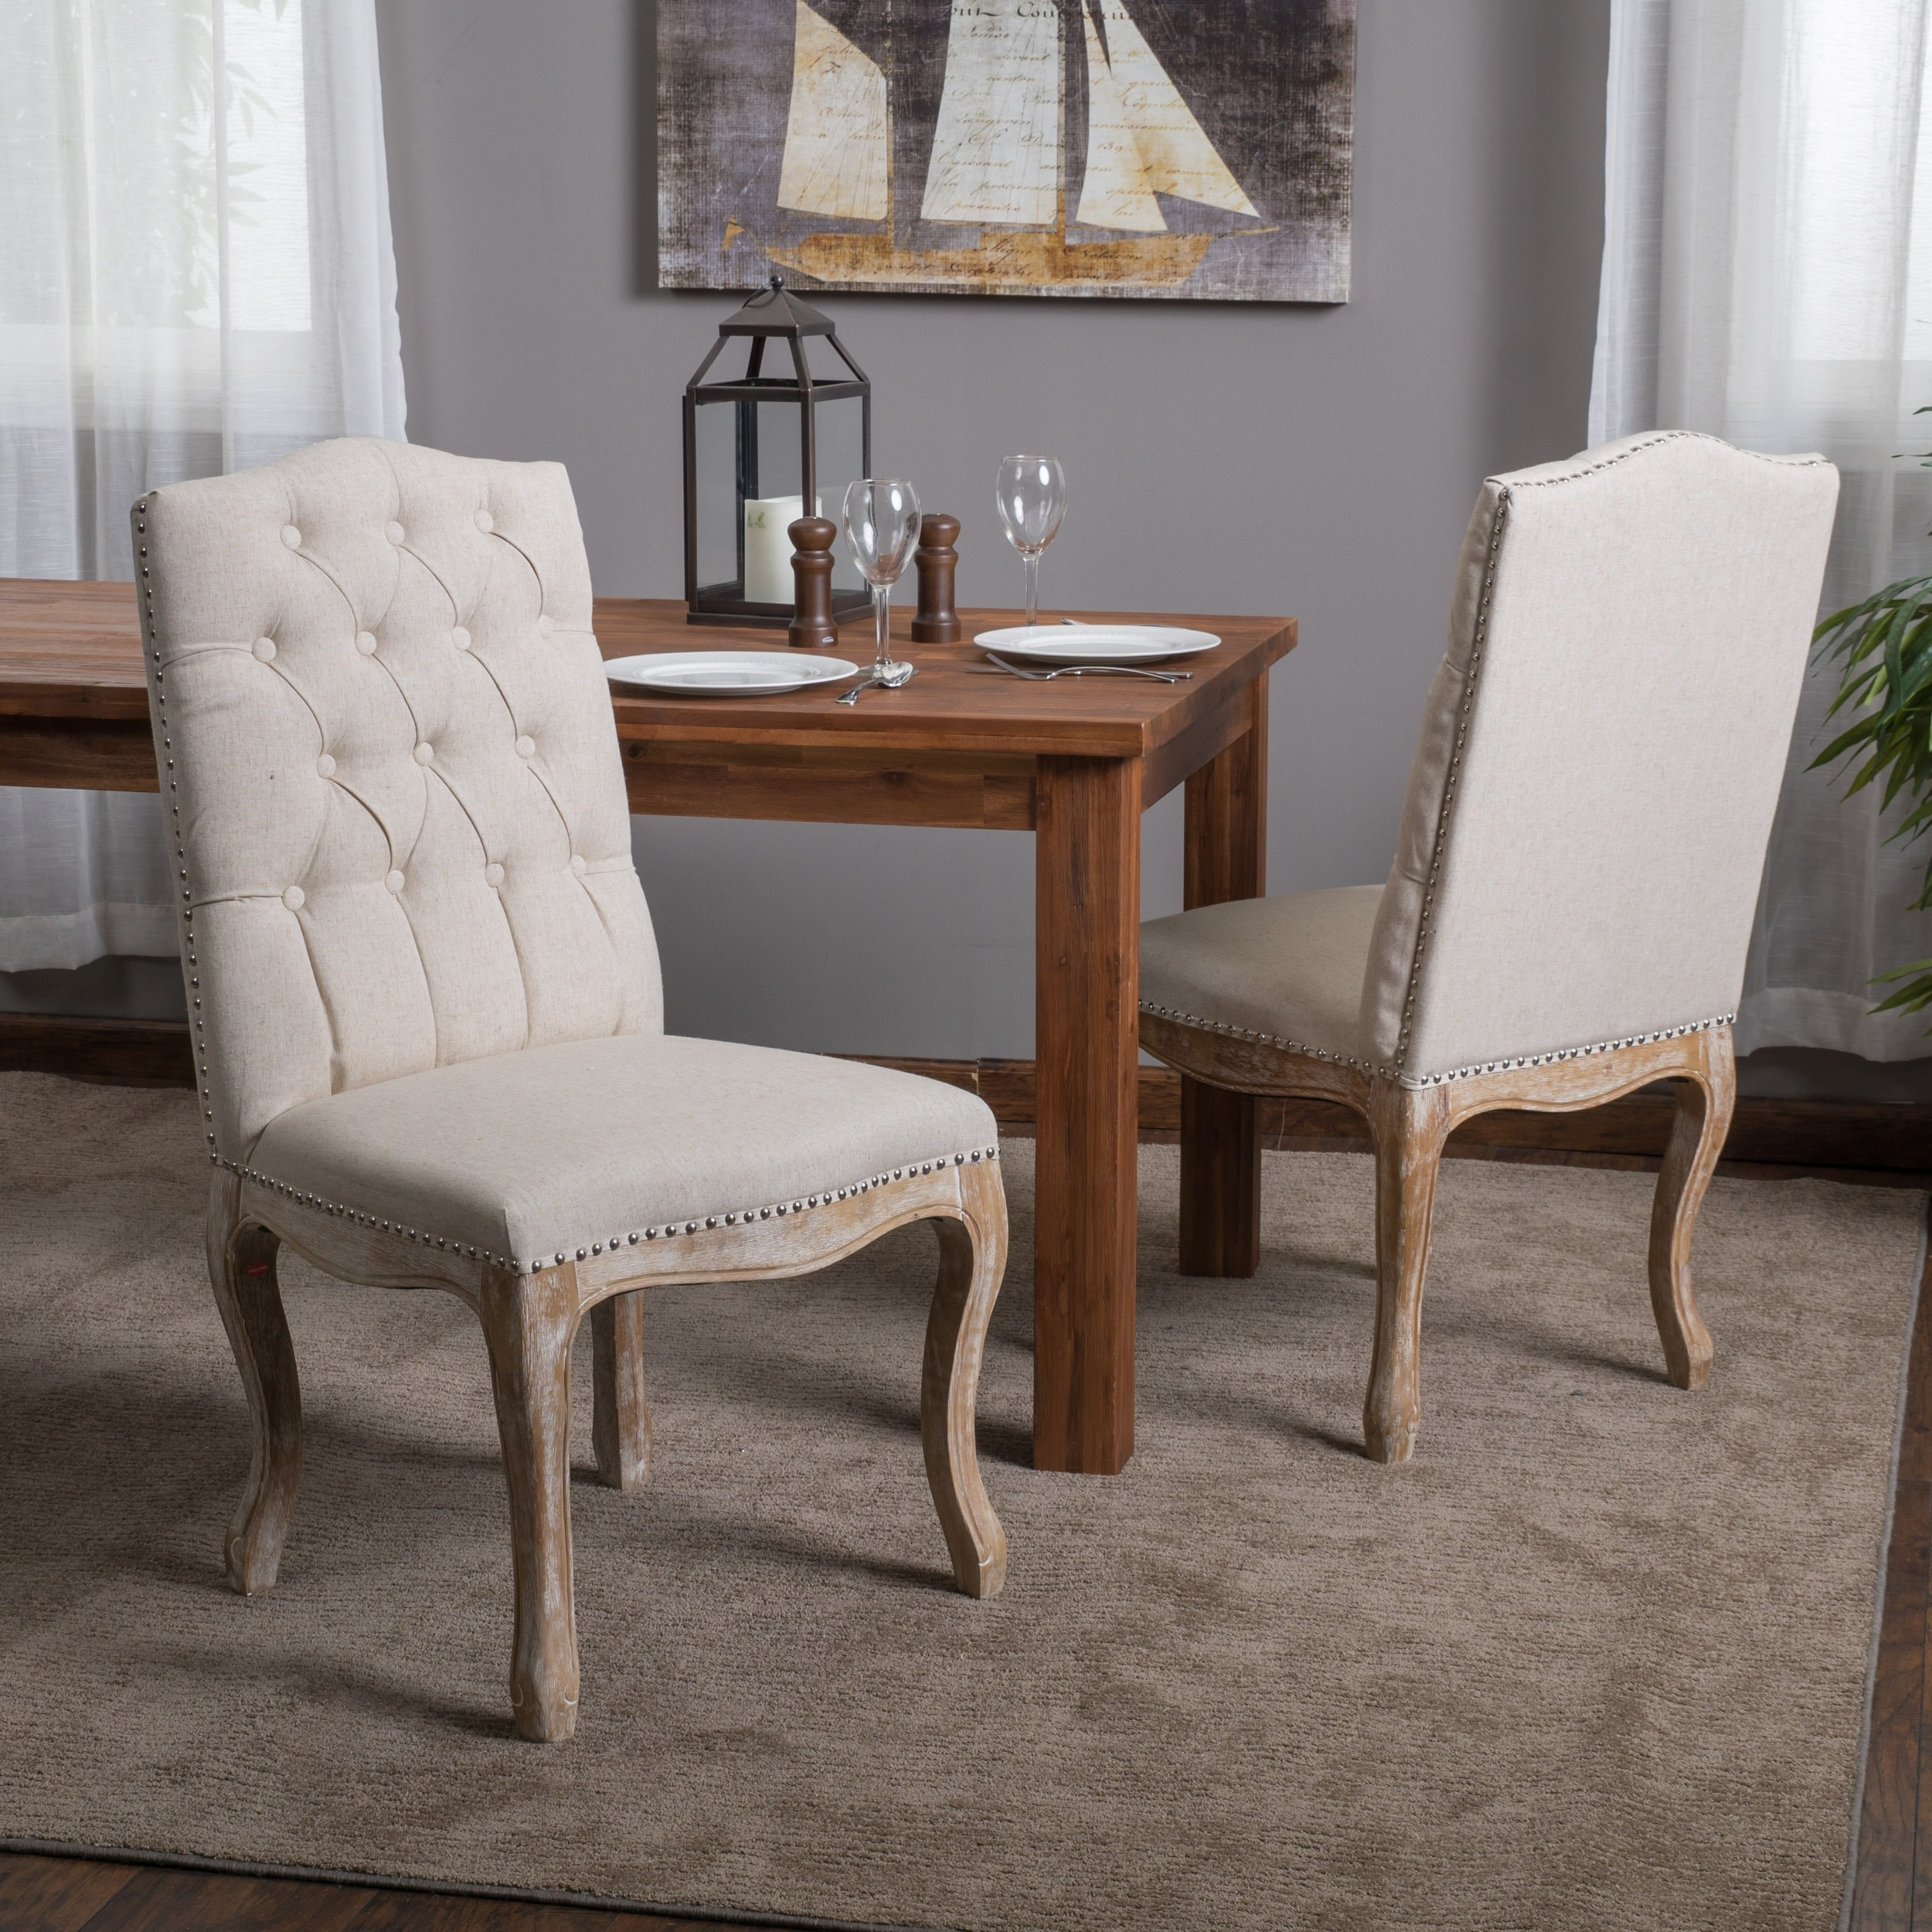 christopher knight chair swivel wayfair home beige tufted fabric weathered